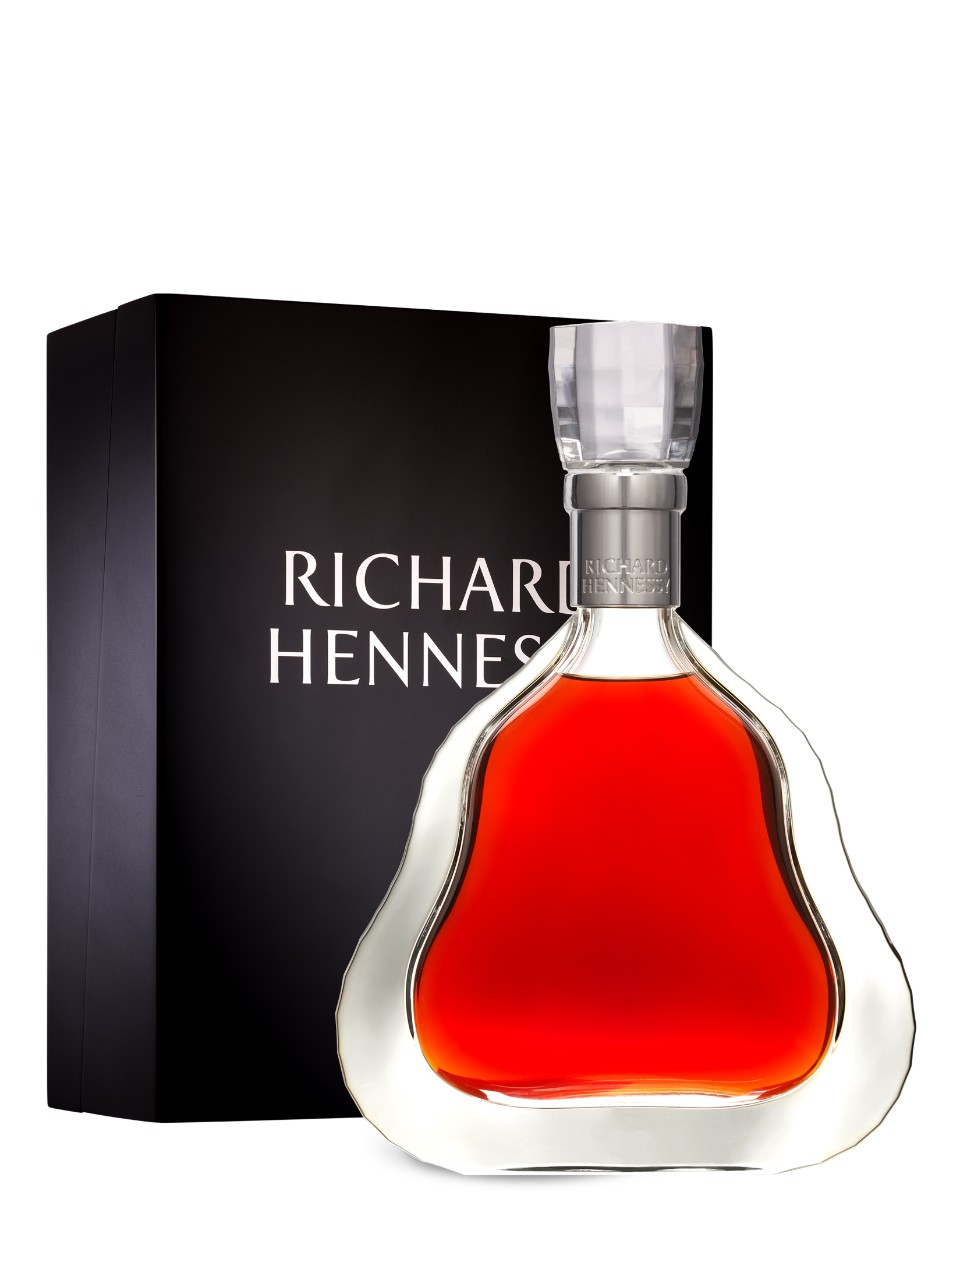 """Lastly we have Richard Hennessy. This Bottle is becoming increasingly rare due to the """"eau de vie"""" (water of life.) """"Eau de vie"""" is the brandy that goes into the blending process, which helps make this specific cognac. This particular brandy is becoming increasingly rare with every bottle that is being made, and soon will become extinct. A bottle of Richard Hennessy can be purchased from anywhere between $4,800 to $7,000. If you are looking to buy this bottle at the Fizz, be prepared to drop $14,000 on it!"""